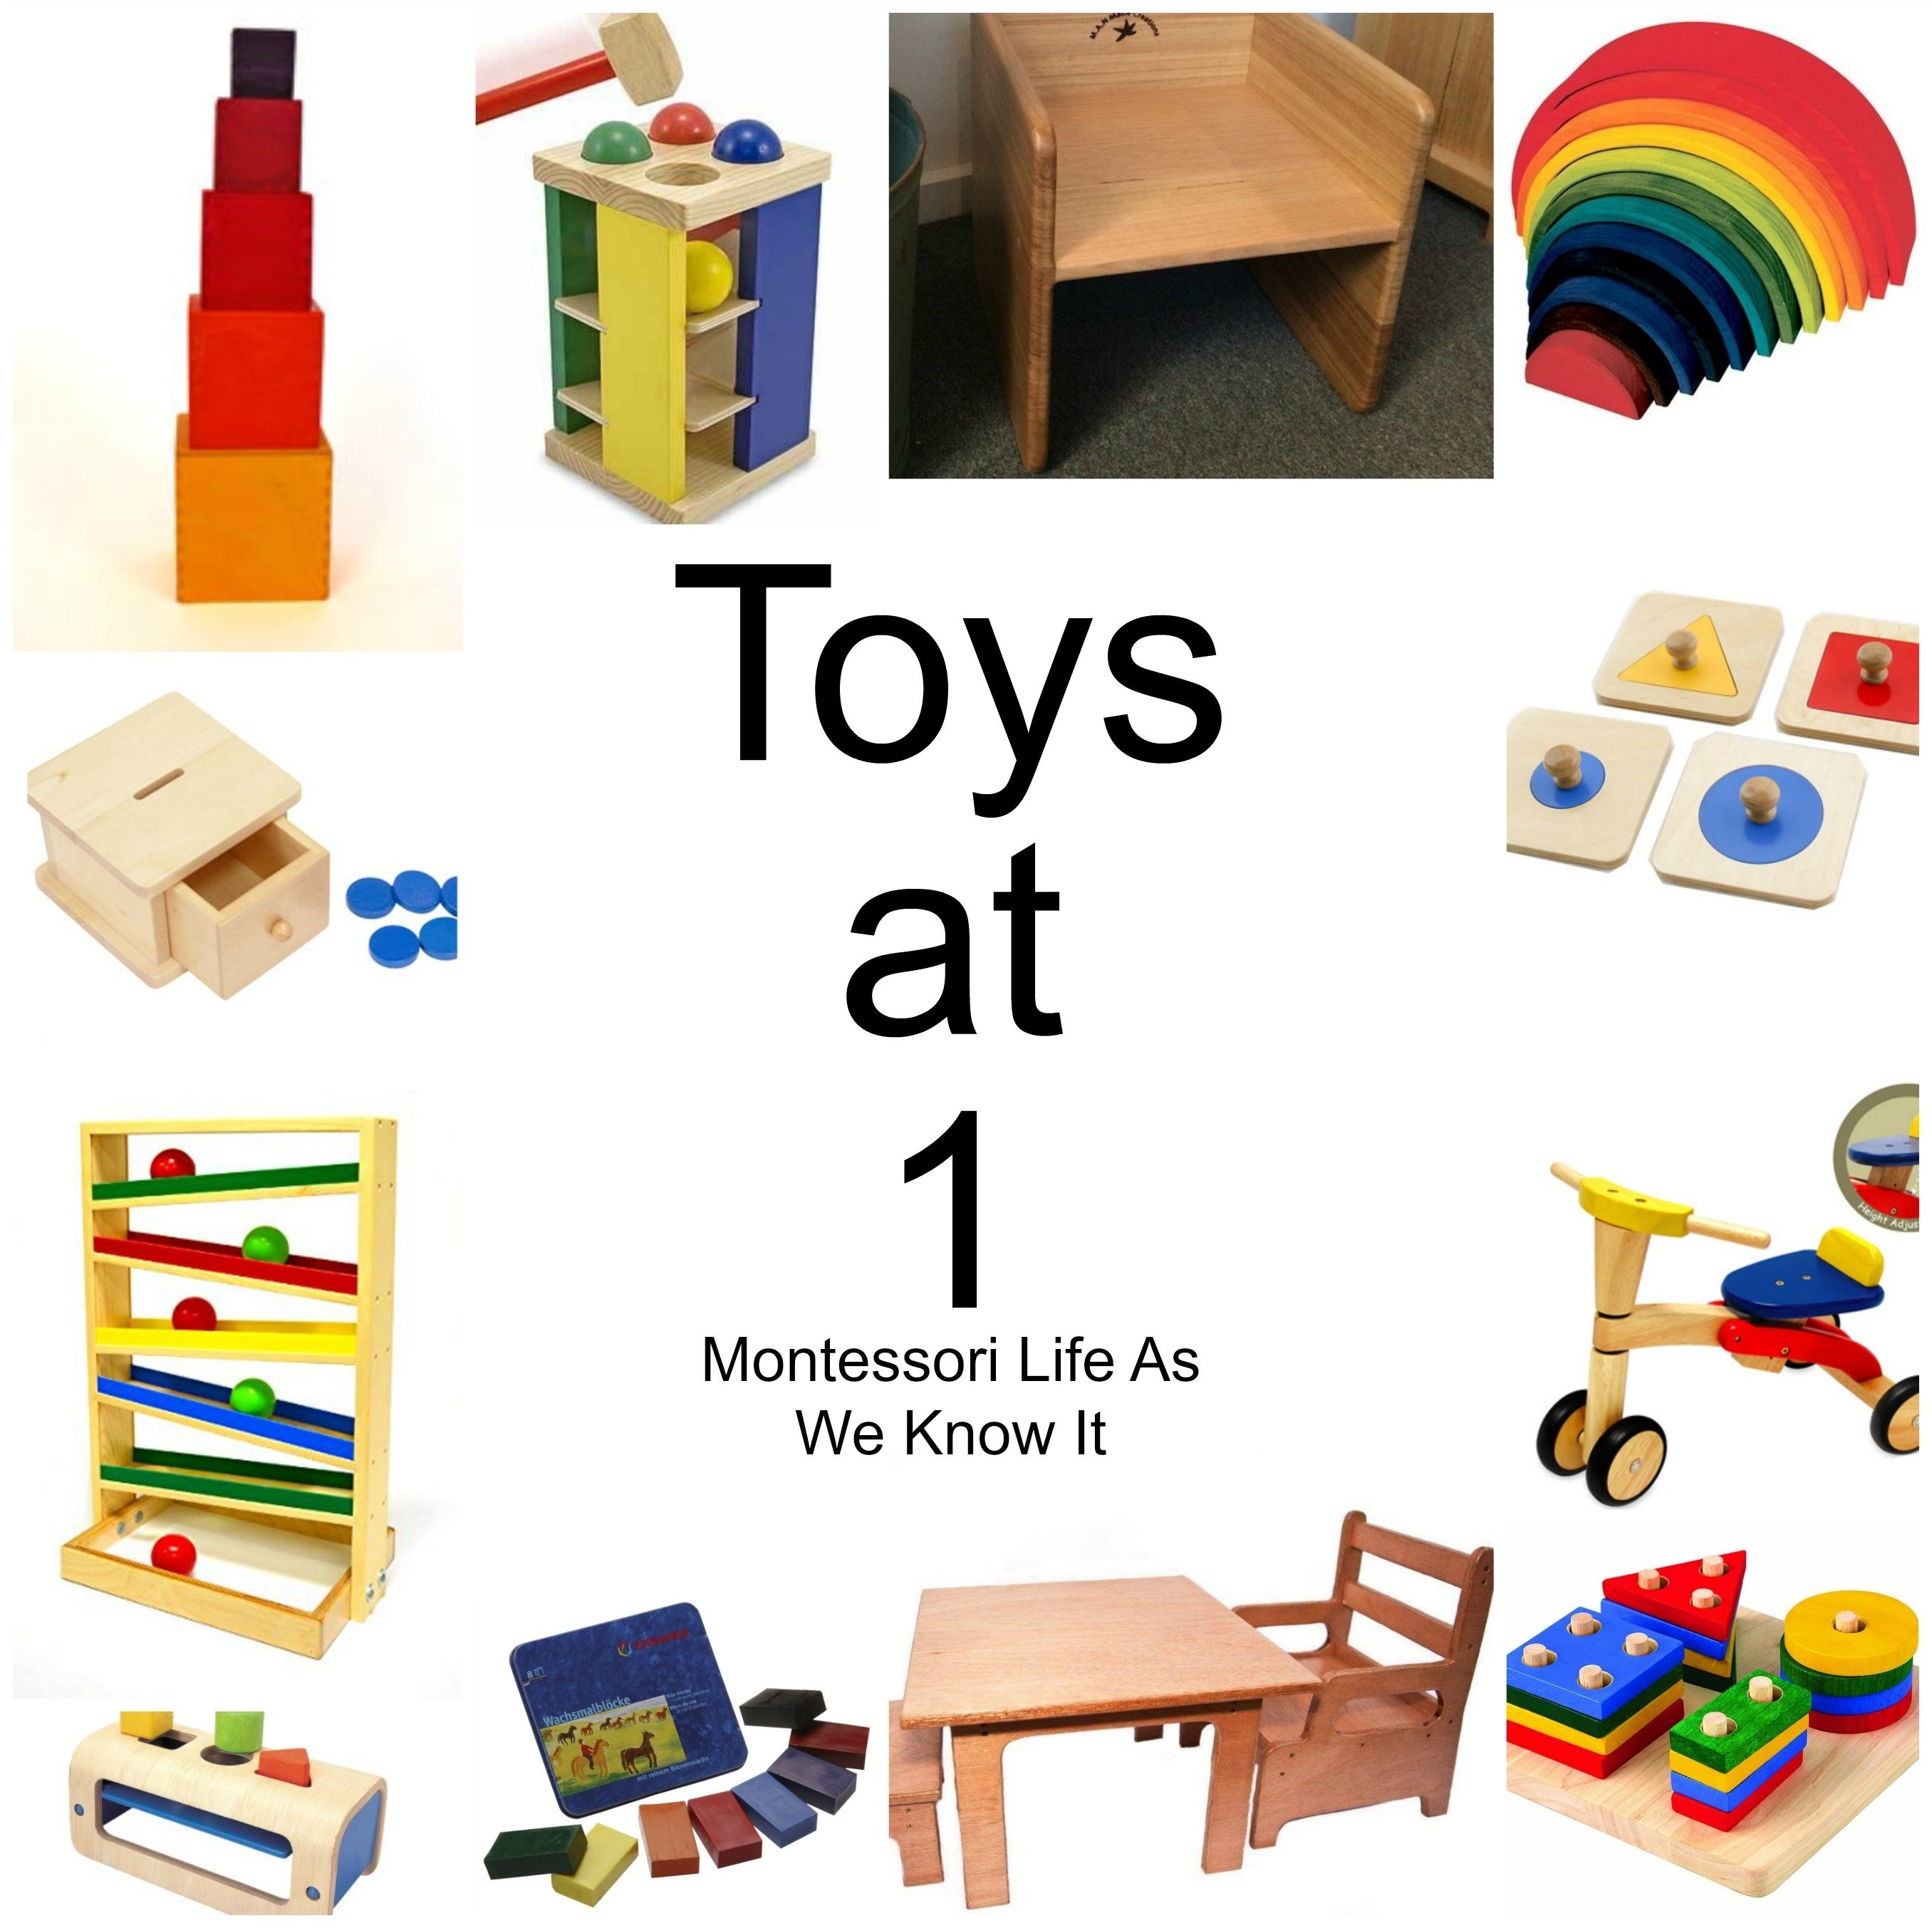 10 Perfect 1 Year Old Gift Ideas gift ideas for one year old montessori life as we know it 1 2020